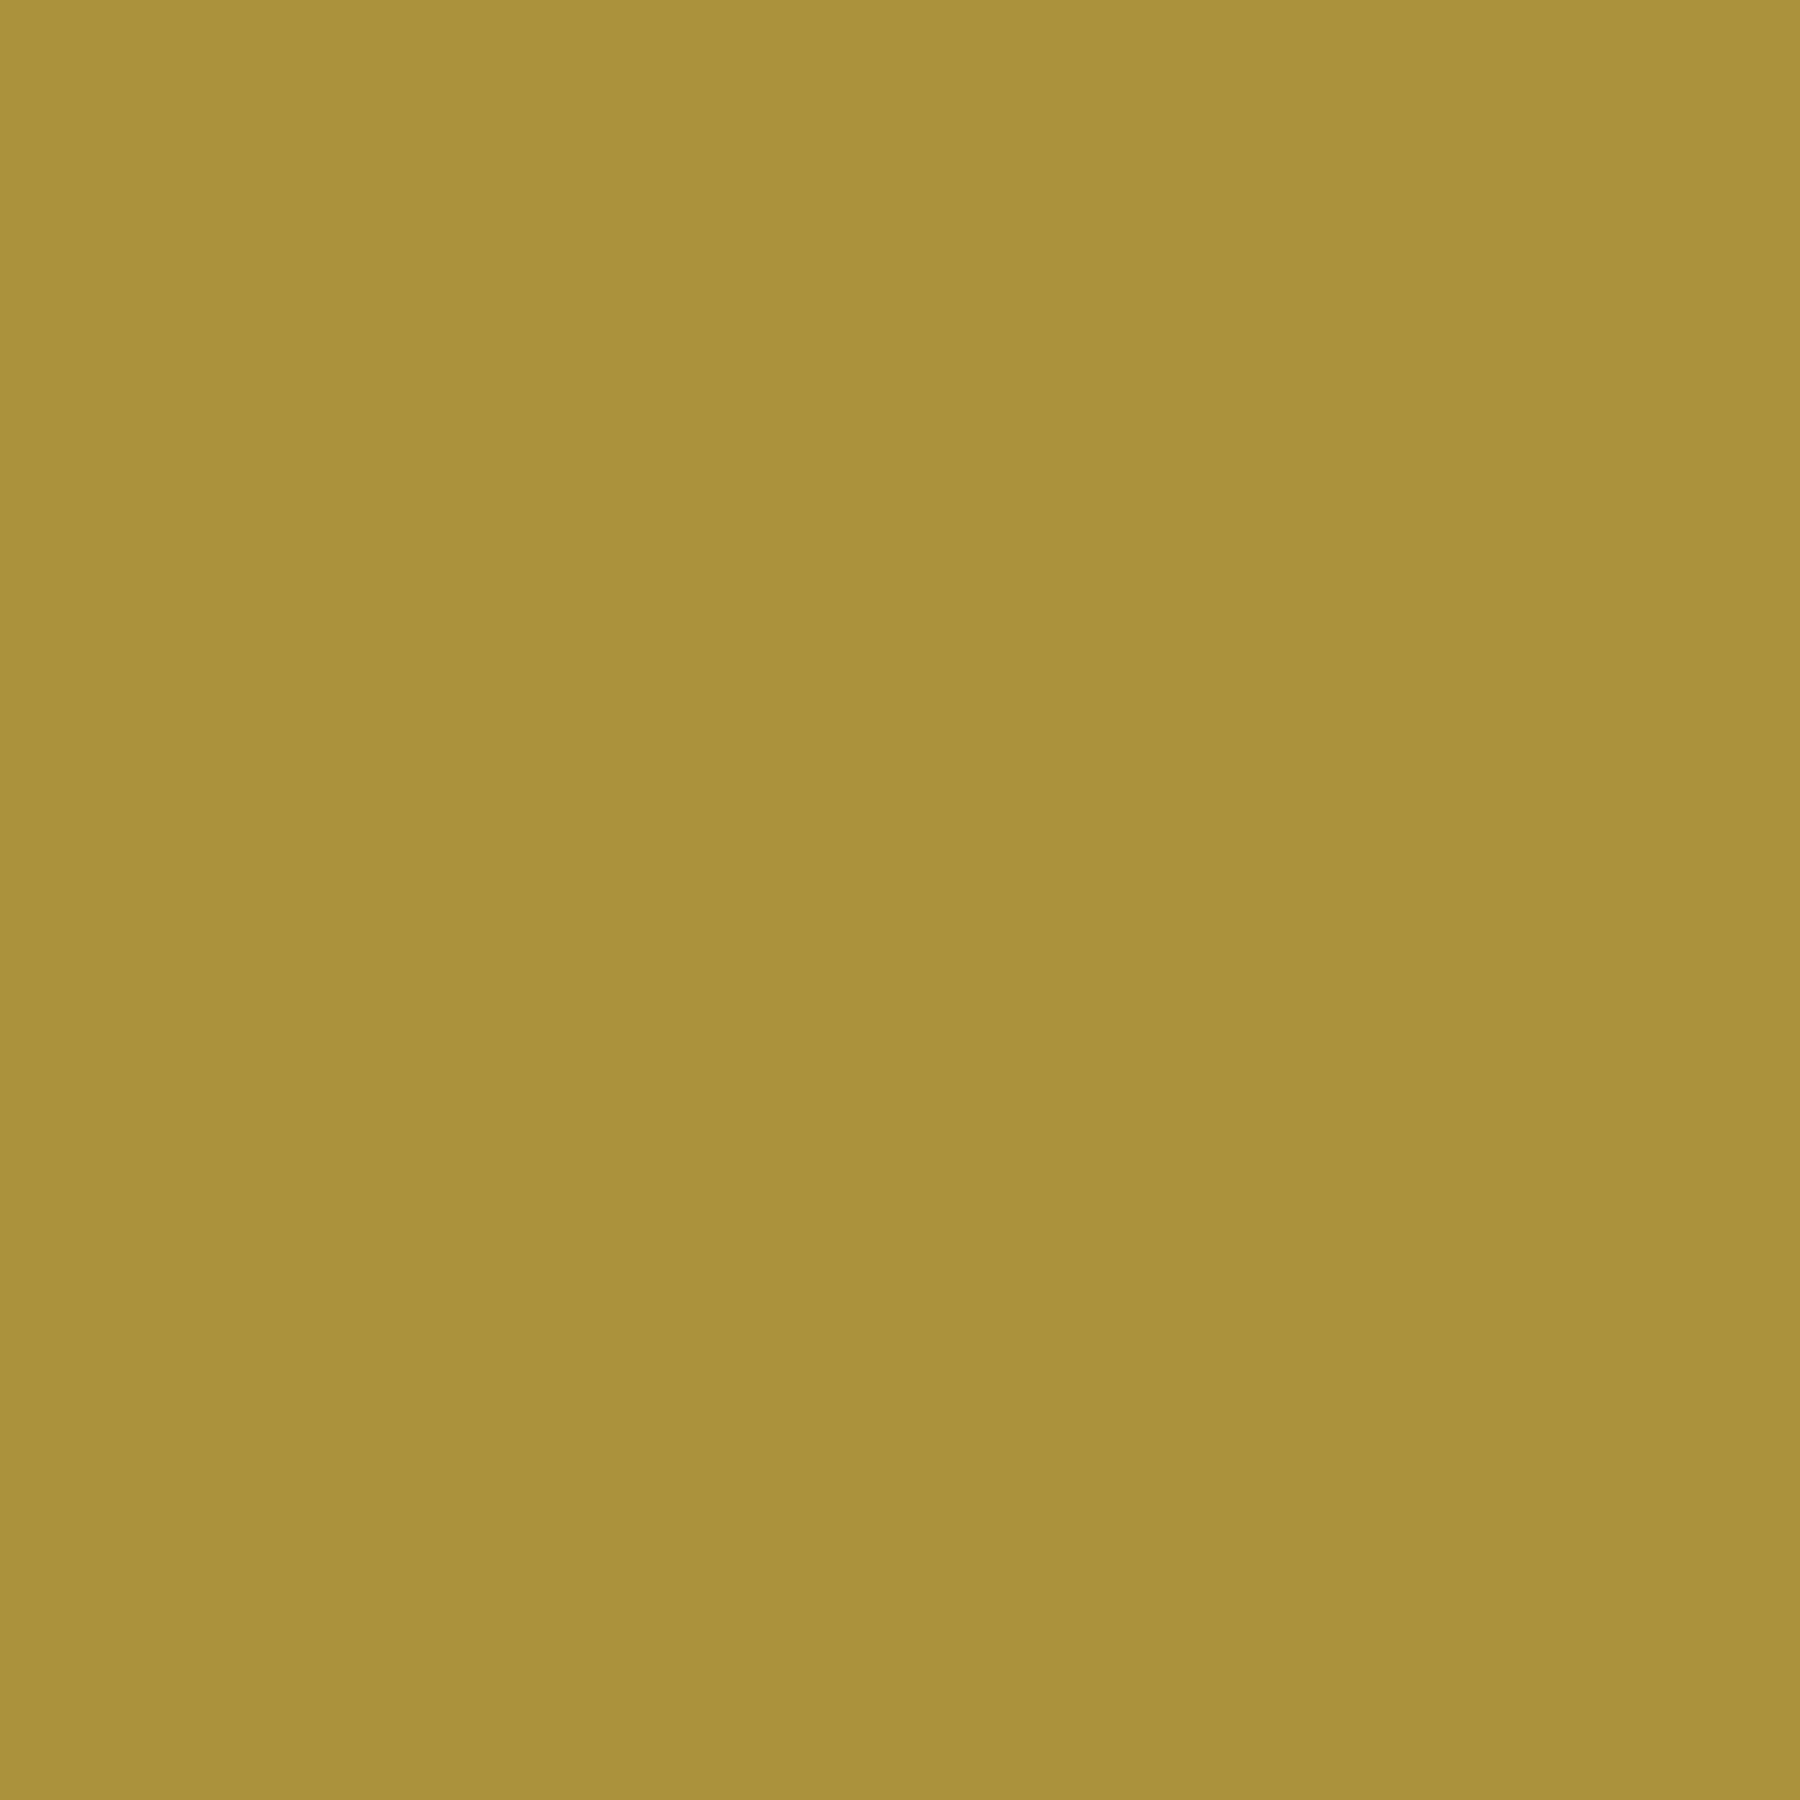 Metallic Gold - Oracal 651